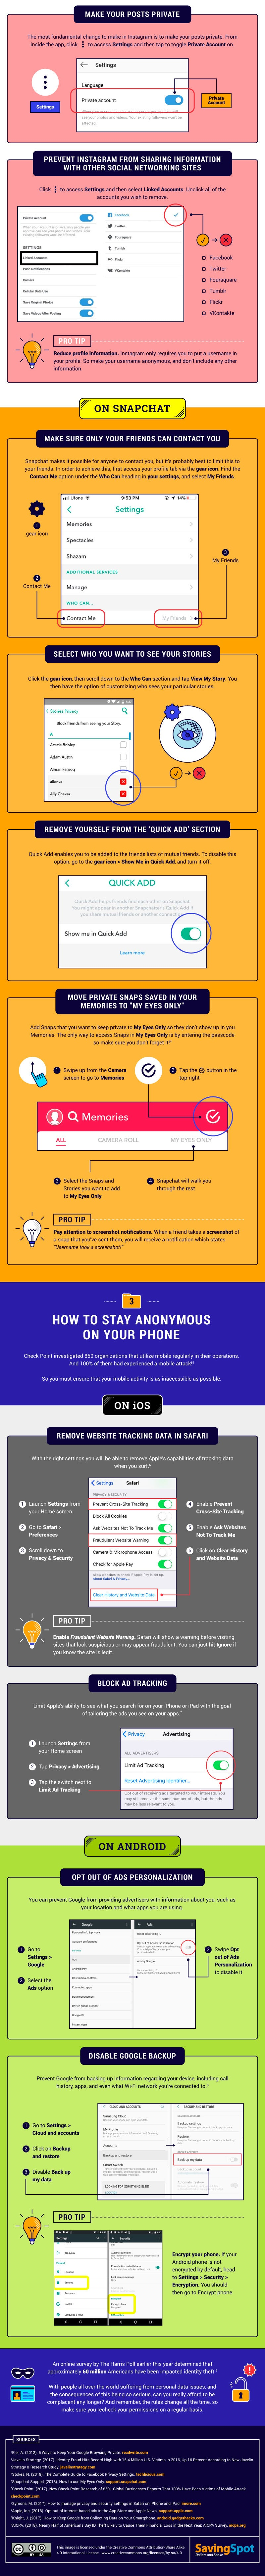 How to Be Invisible Online -- Without Going Off the Grid (Infographic)